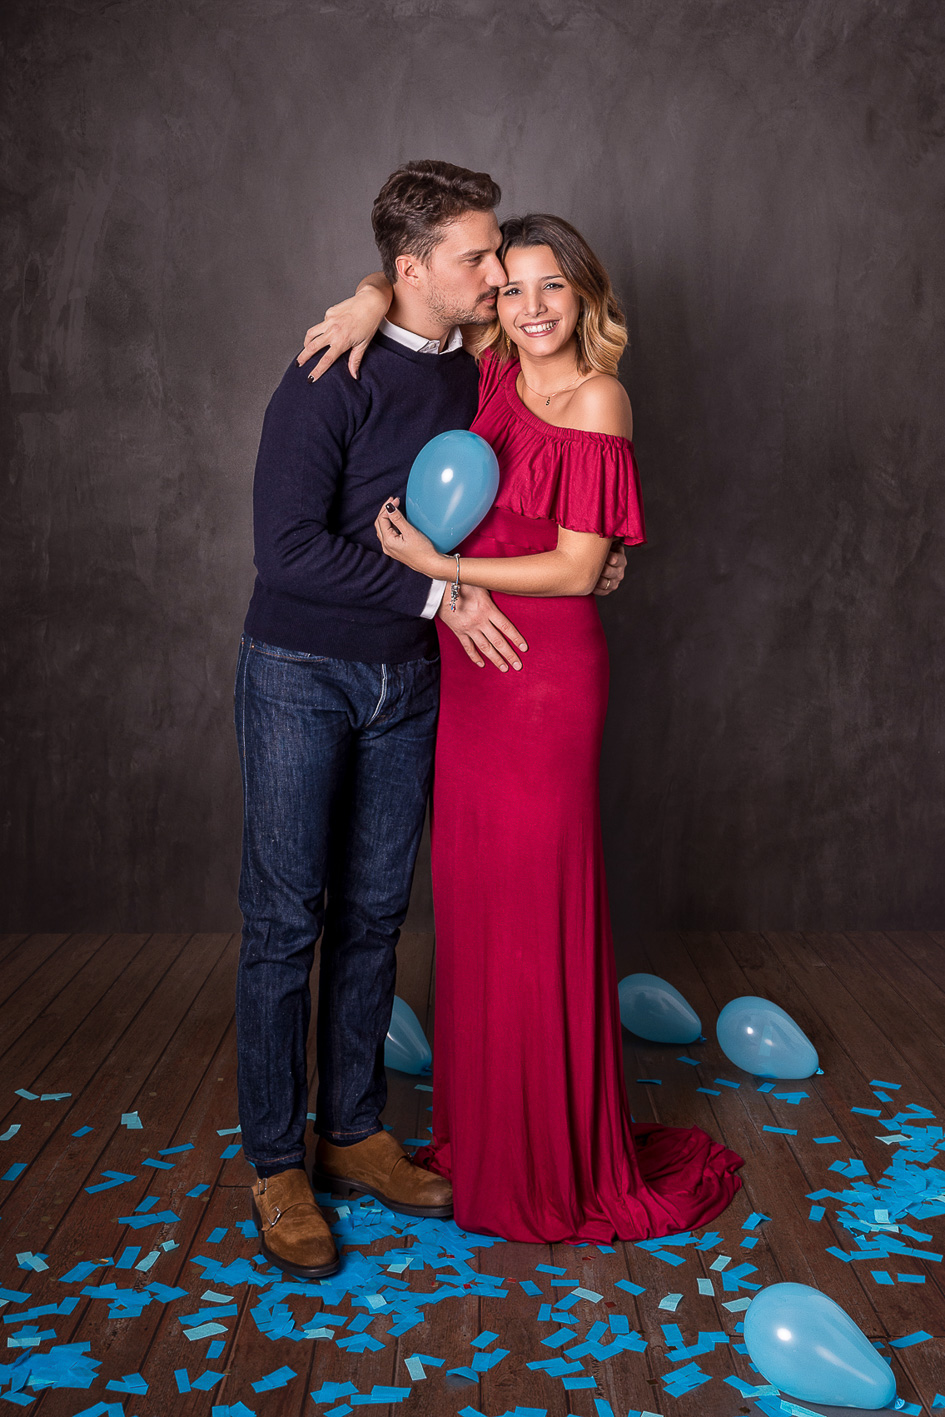 maternity-tagg-photography-23